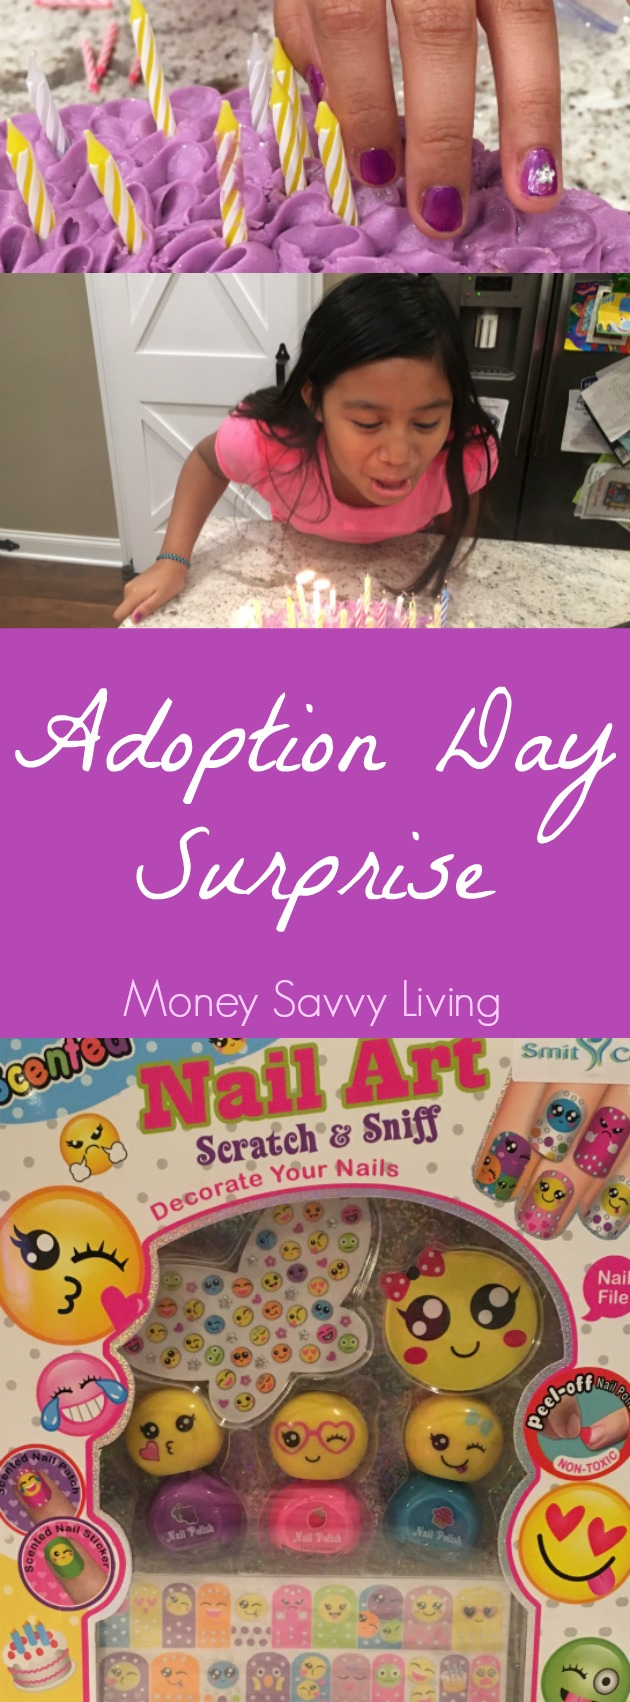 Adoption Day Surprise | Money Savvy Living